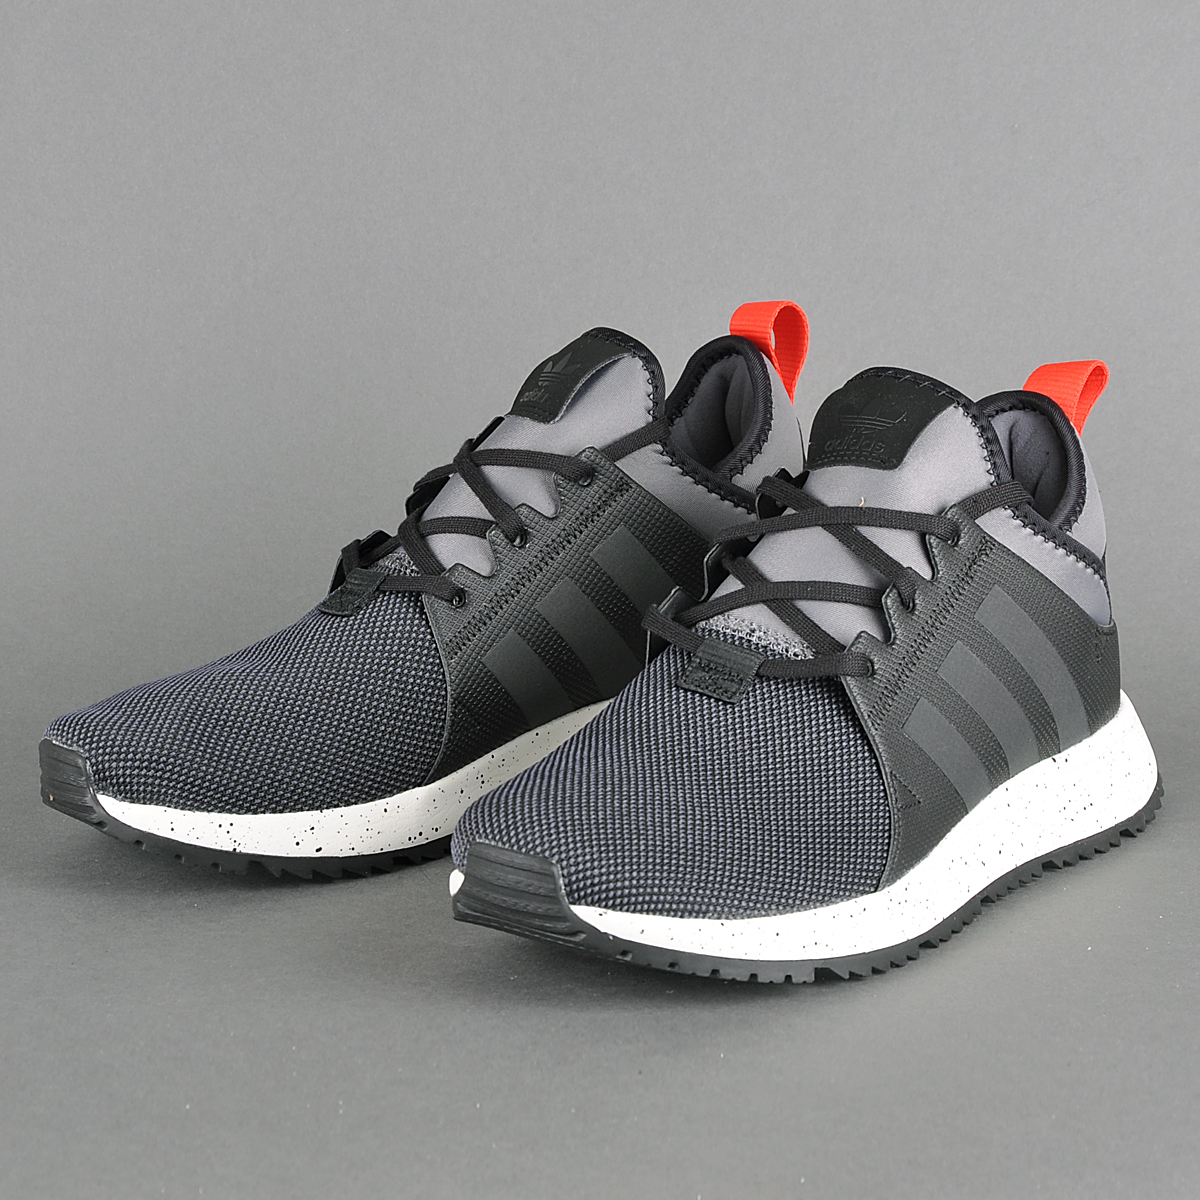 Atlassian CrowdID Adidas Nmd Shoes History Nike Red And